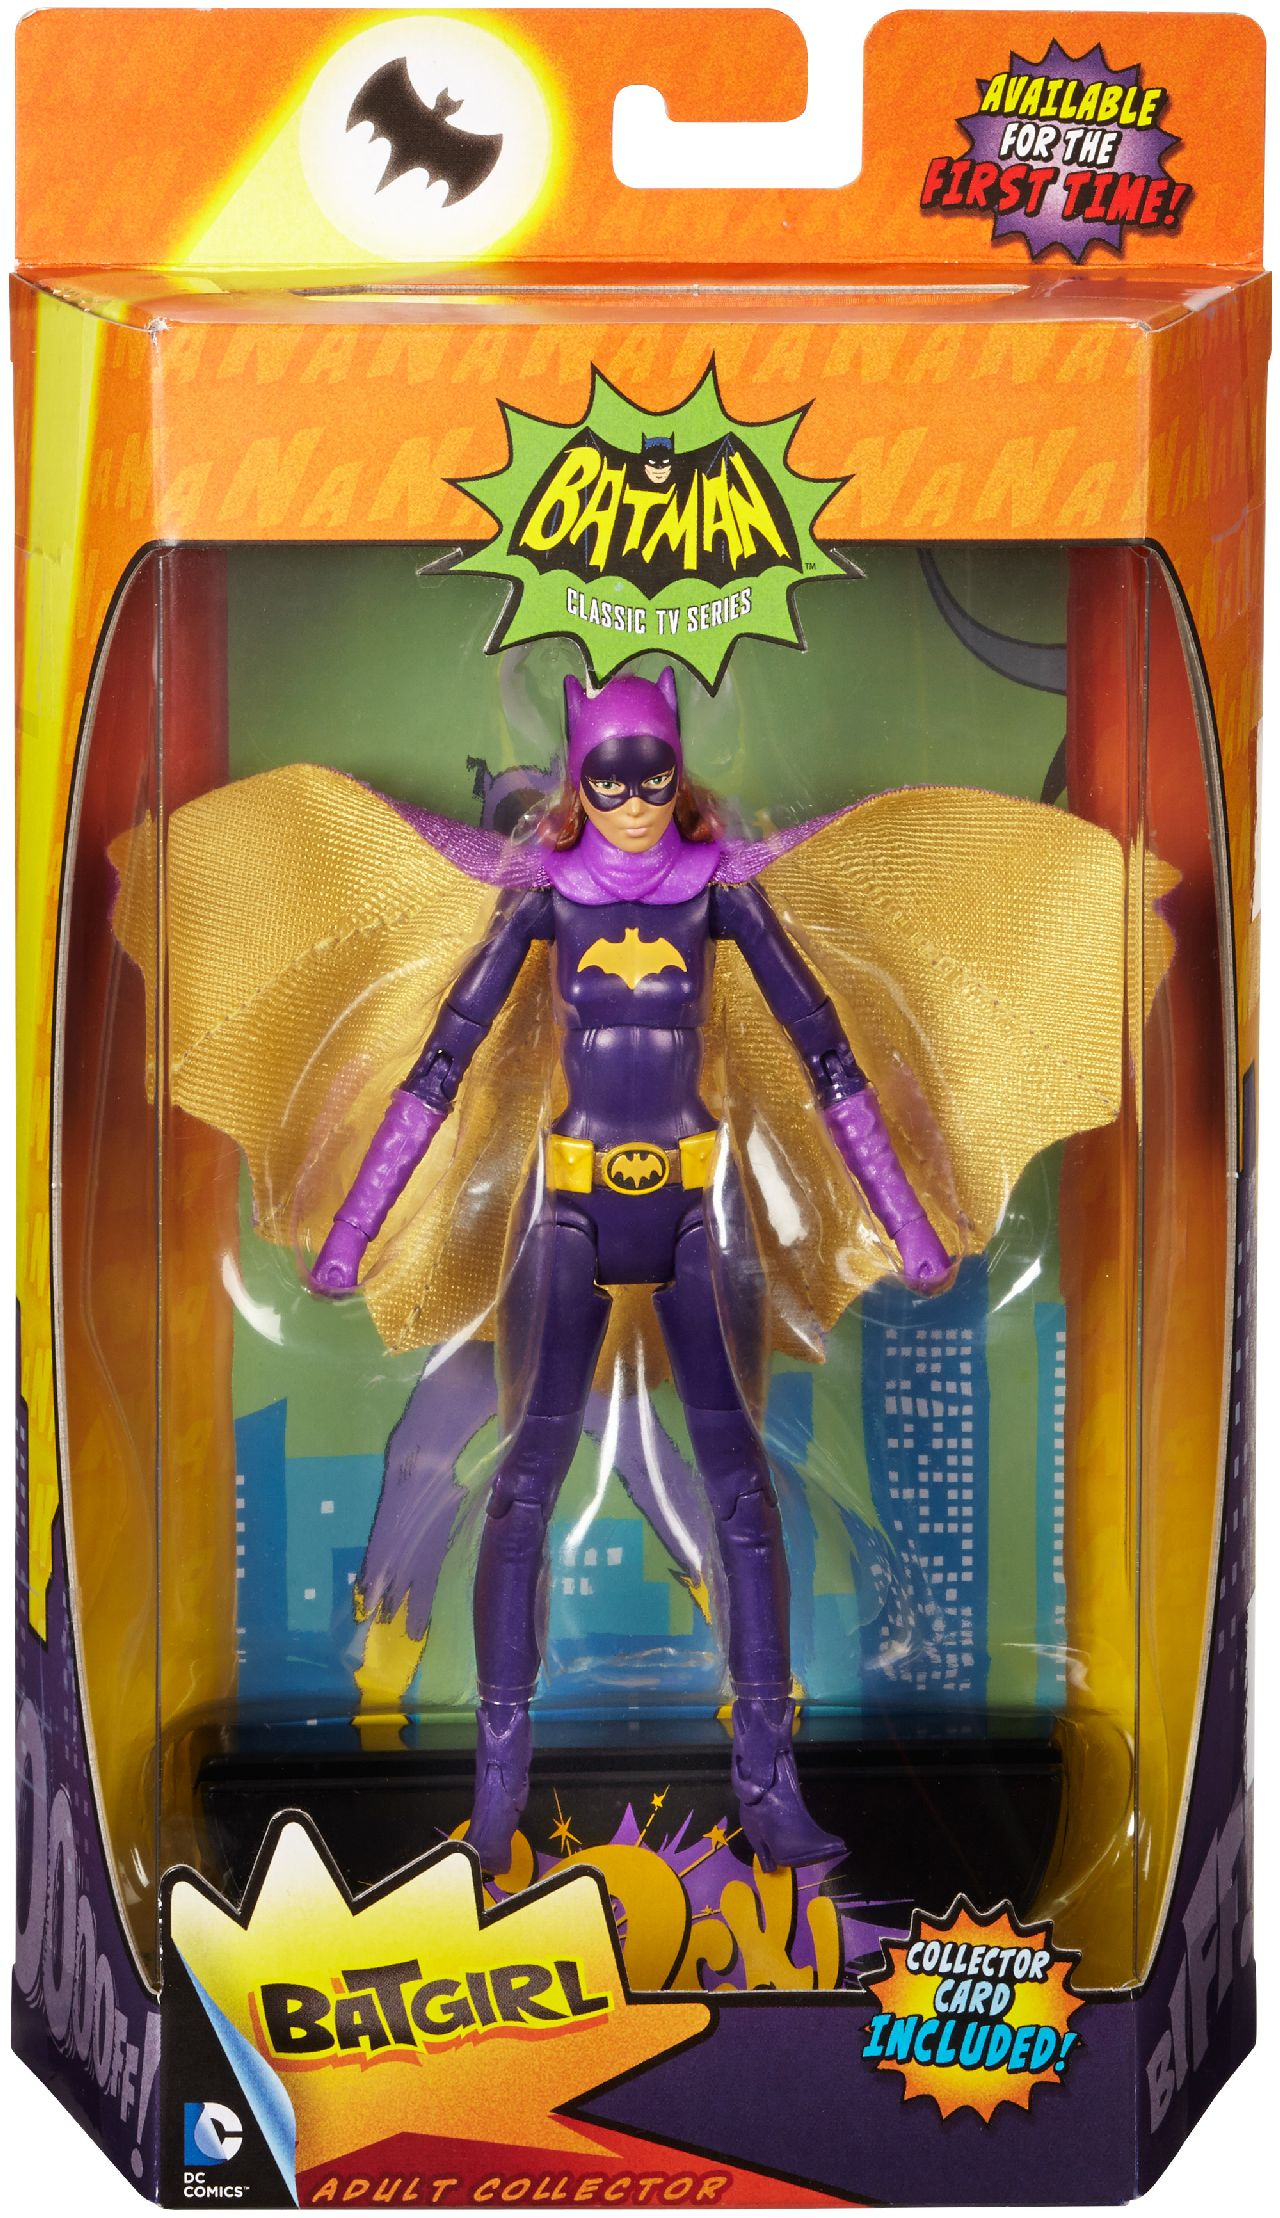 BATMAN Classic TV Series Batgirl from Mattel